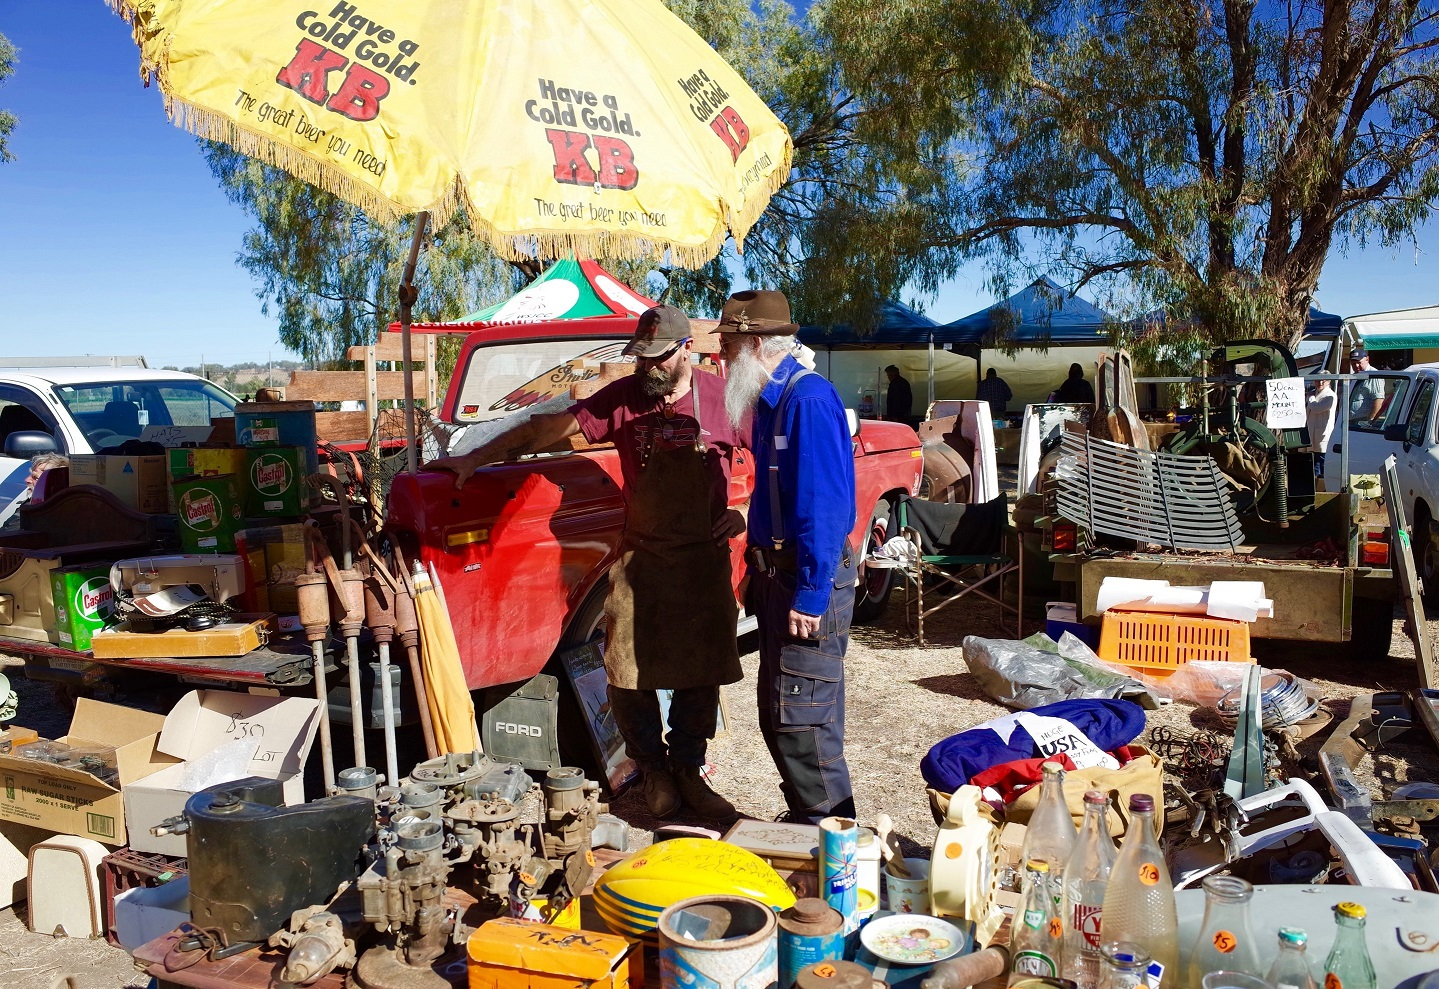 WALCHA SWAP MEET